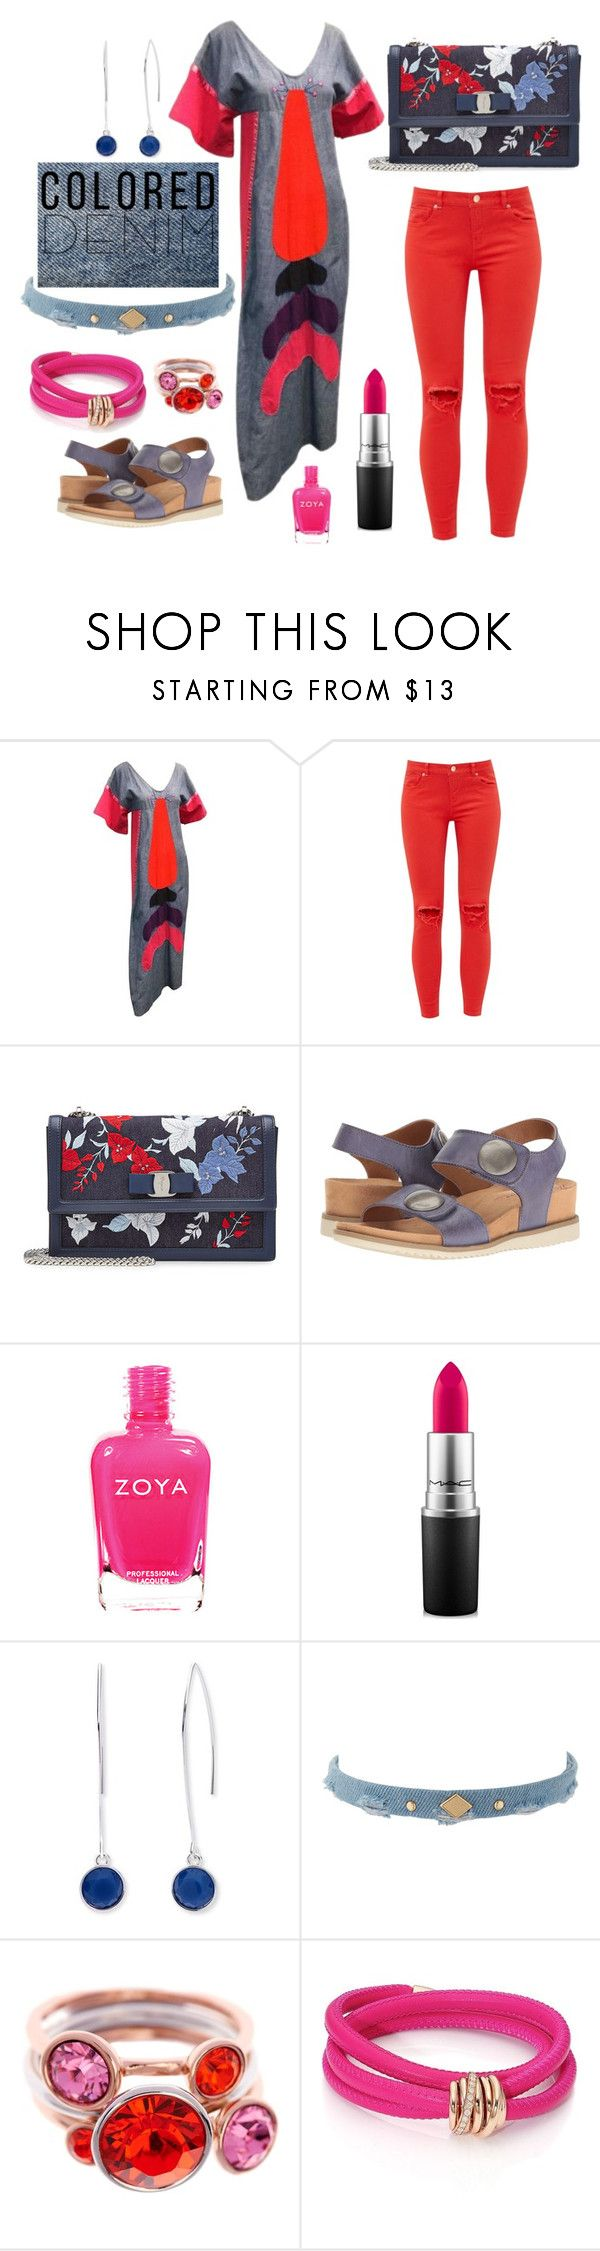 """Untitled #1492"" by moestesoh ❤ liked on Polyvore featuring Ted Baker, Salvatore Ferragamo, Comfortiva by Softspots, MAC Cosmetics, Nine West, Ettika and de Grisogono"